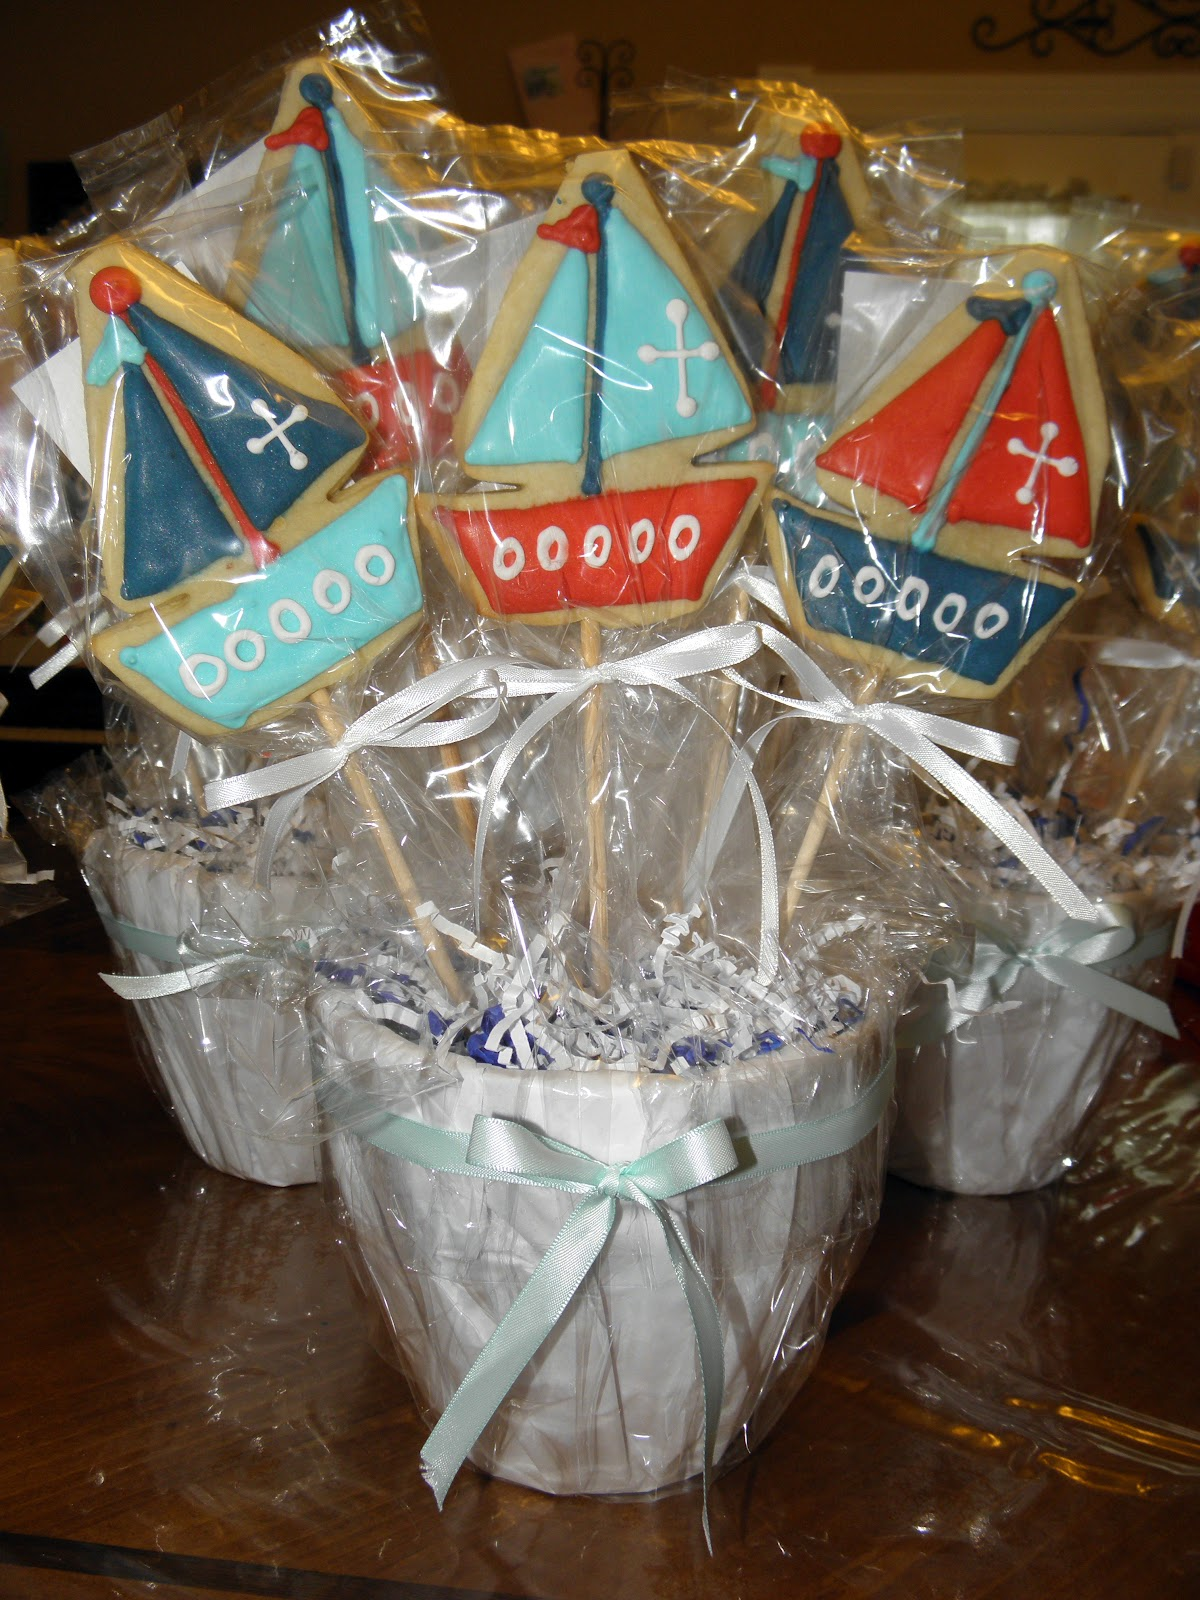 Cake Pop Centerpieces For Baptism : Cookie Dreams Cookie Co.: Christening Cookie Pop Centerpieces